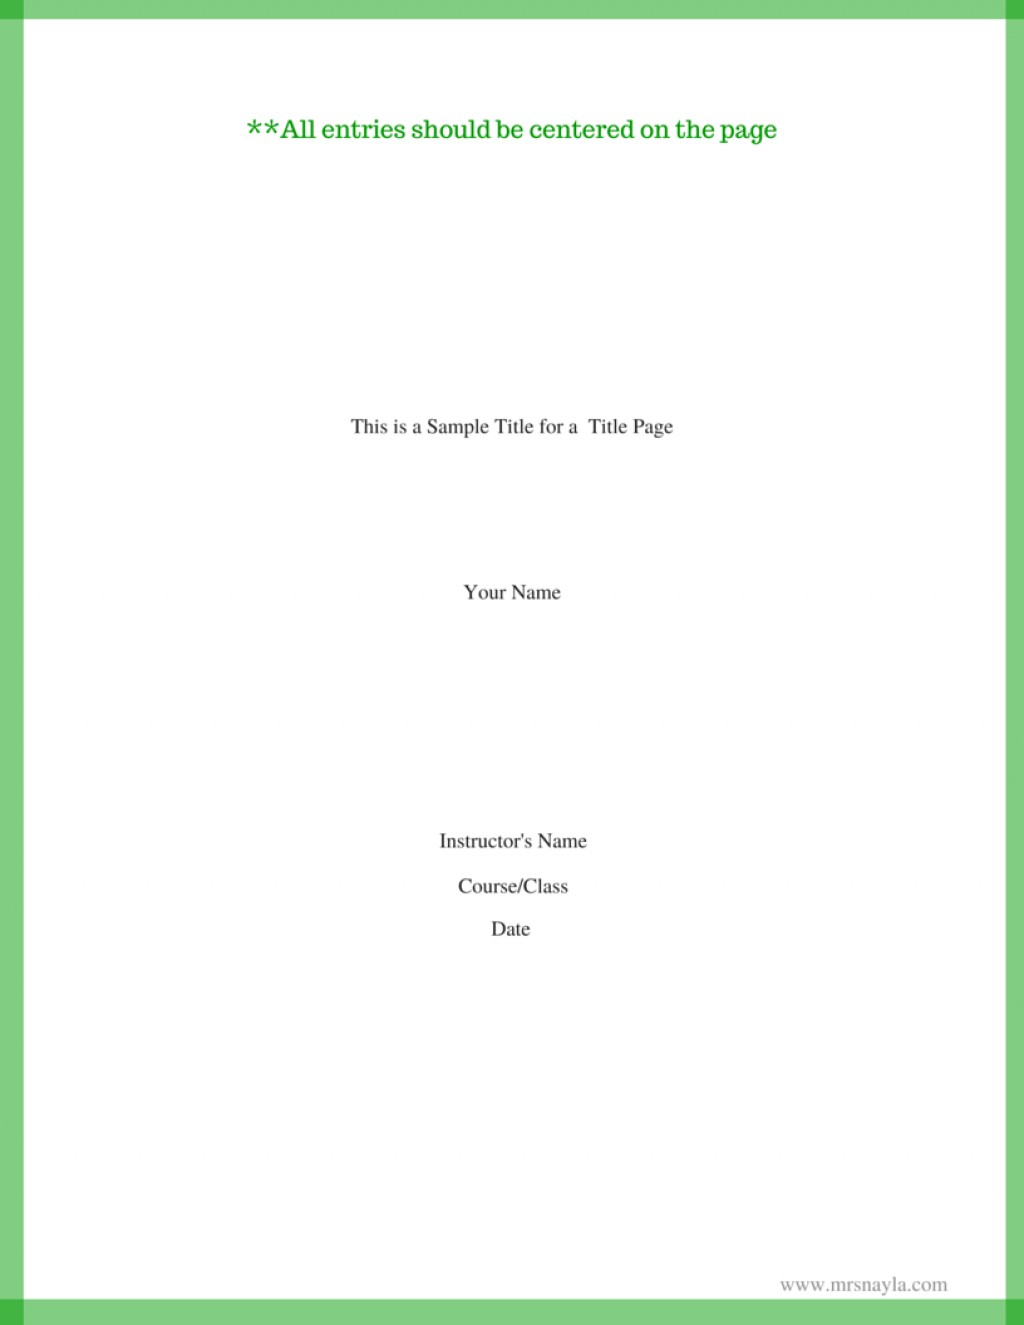 015 Research Paper This Is Sample Title For Page1 Mla Format Cover Page Unique Example Large